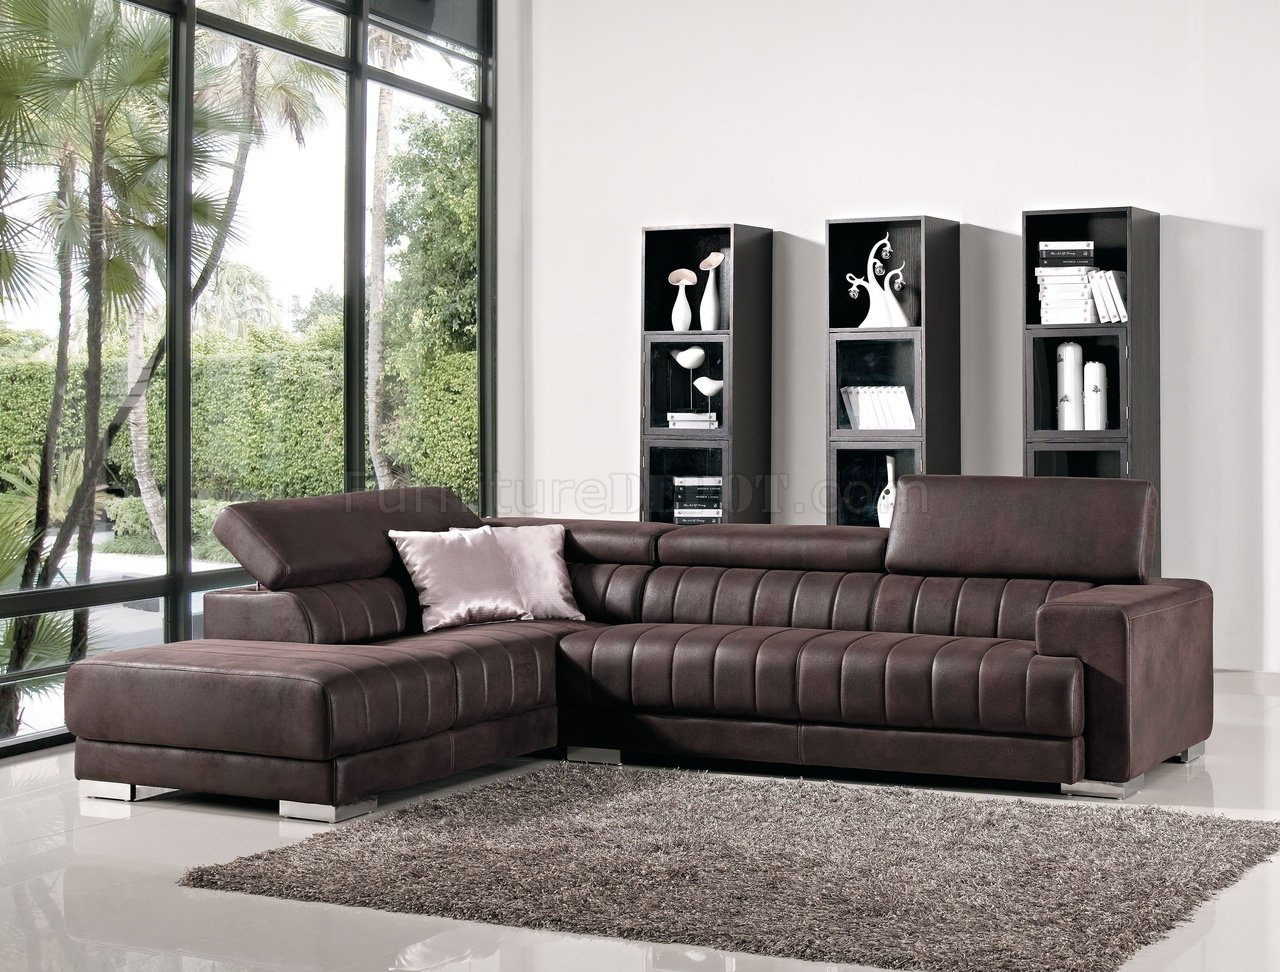 Brown Fabric Modern Sectional Sofa W/Adjustable Headrest Regarding Sectional Sofas (View 14 of 15)